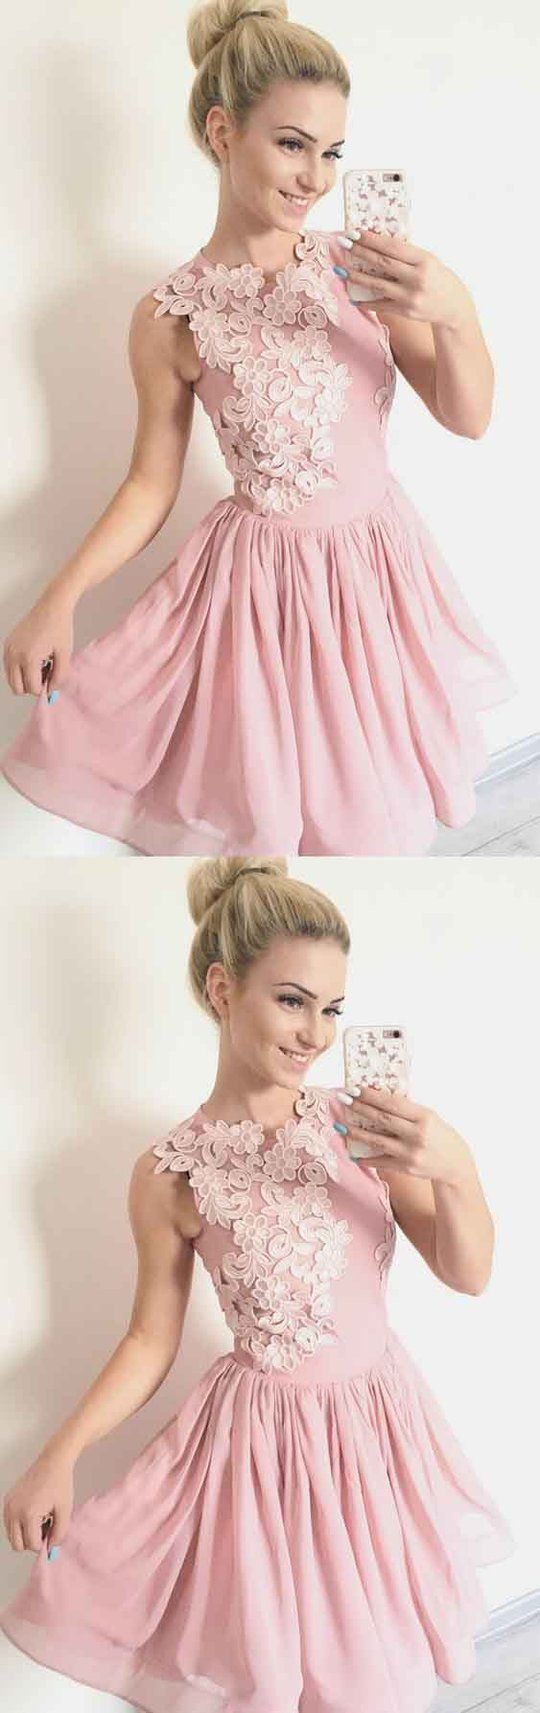 Applique homecoming dresses pink short prom dressesmg in